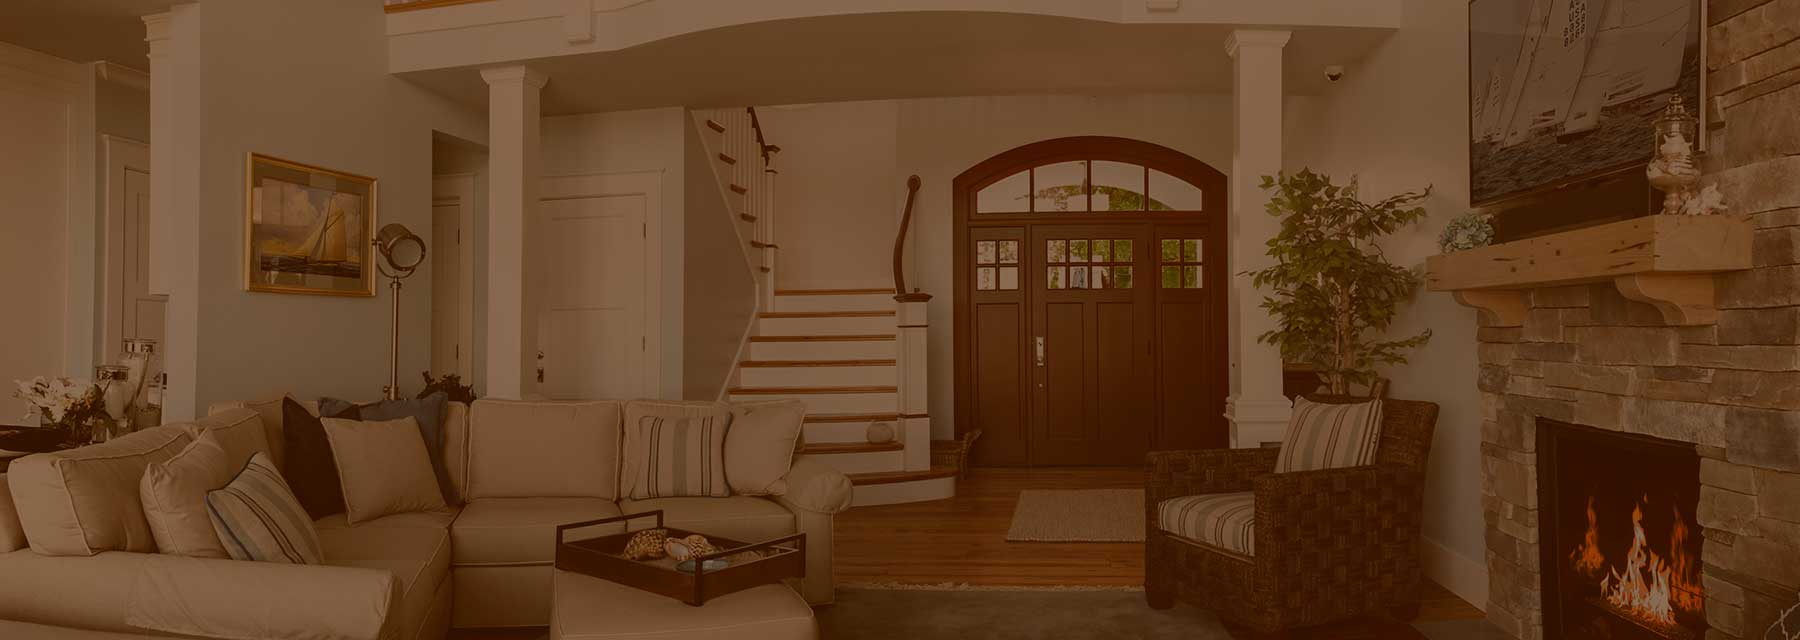 Photo of Captiva front entry door